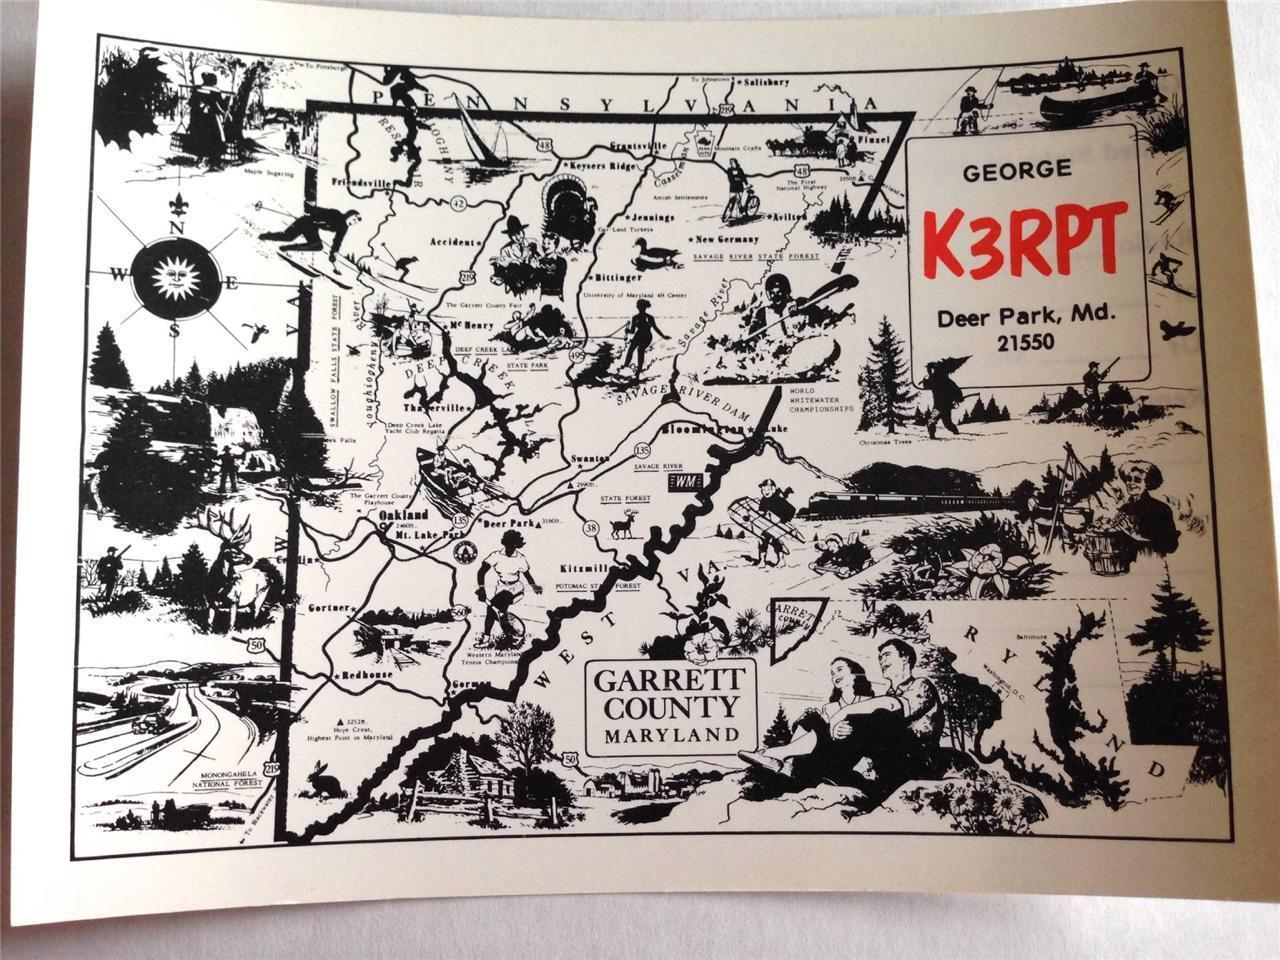 Garrett County Map Ham Radio Card QSL QSO Deer Park MD 21550 K3RPT